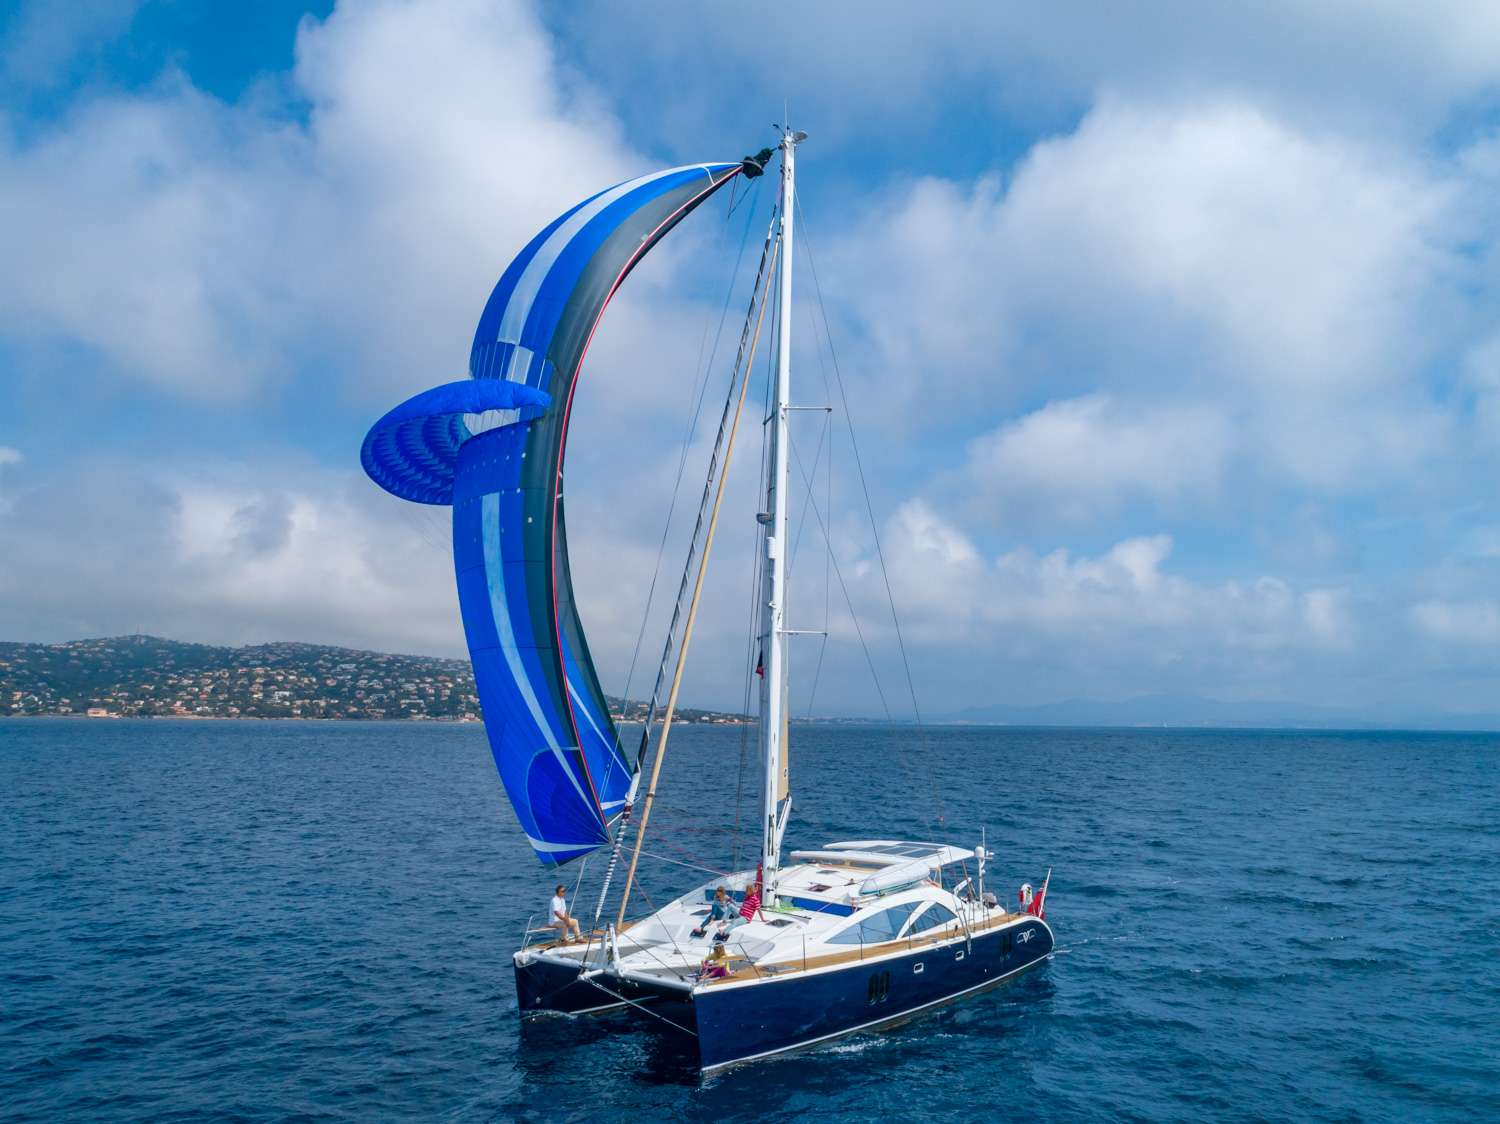 Cat Yacht 'Cat', 6 PAX, 2 Crew, 50.35 Ft, 15.35 Meters, Built 2011, Discovery Yachts, Refit Year